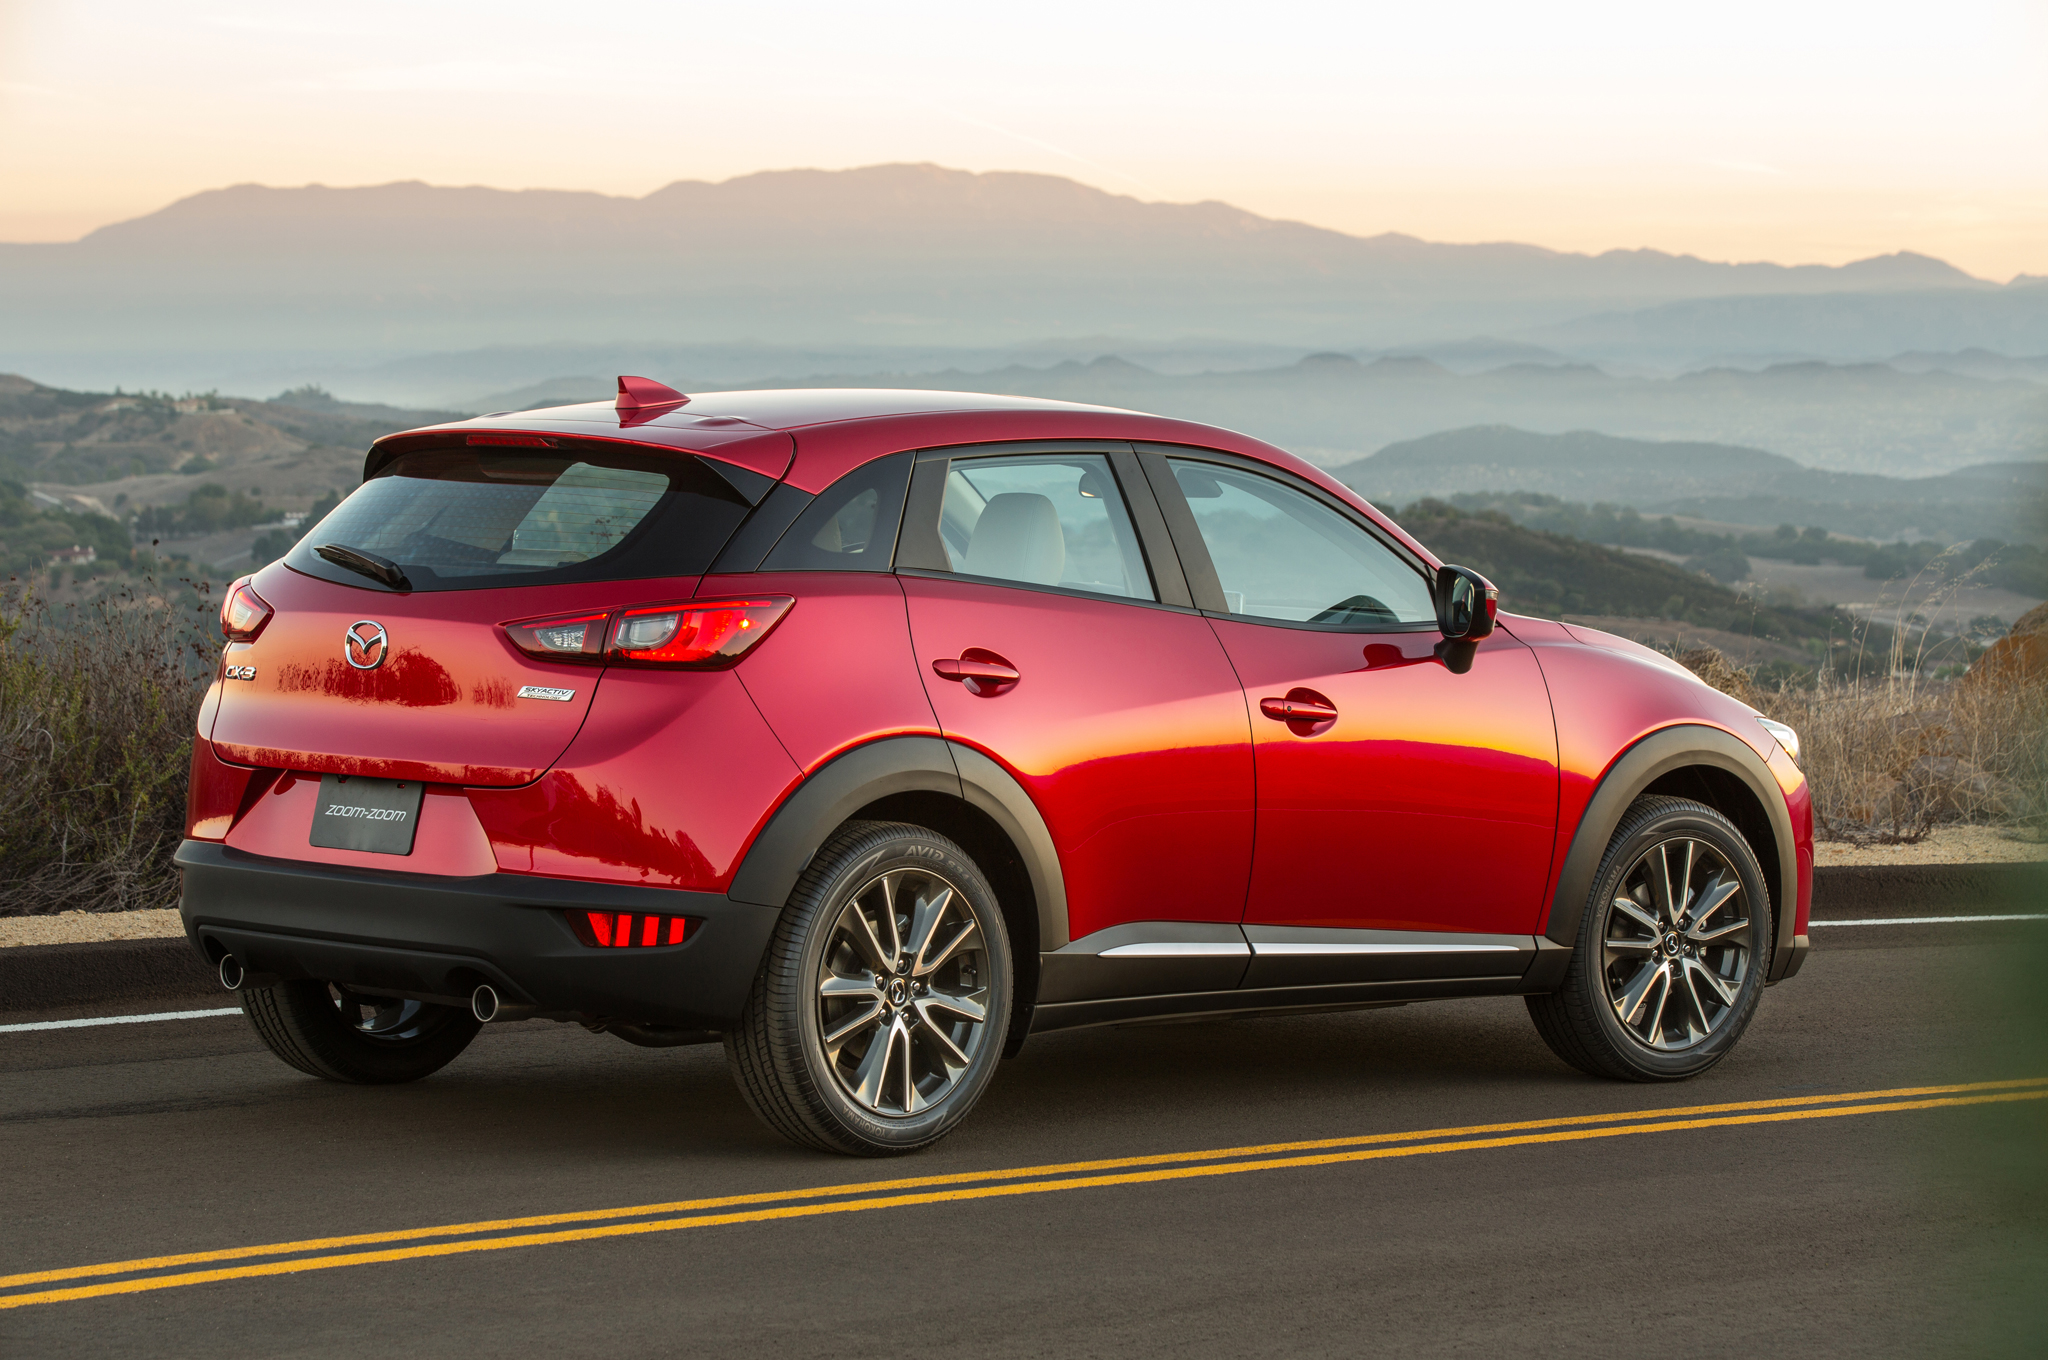 2016 Mazda Cx 3 Review 9 Headlight Wiring Schematic Looks Great Drives